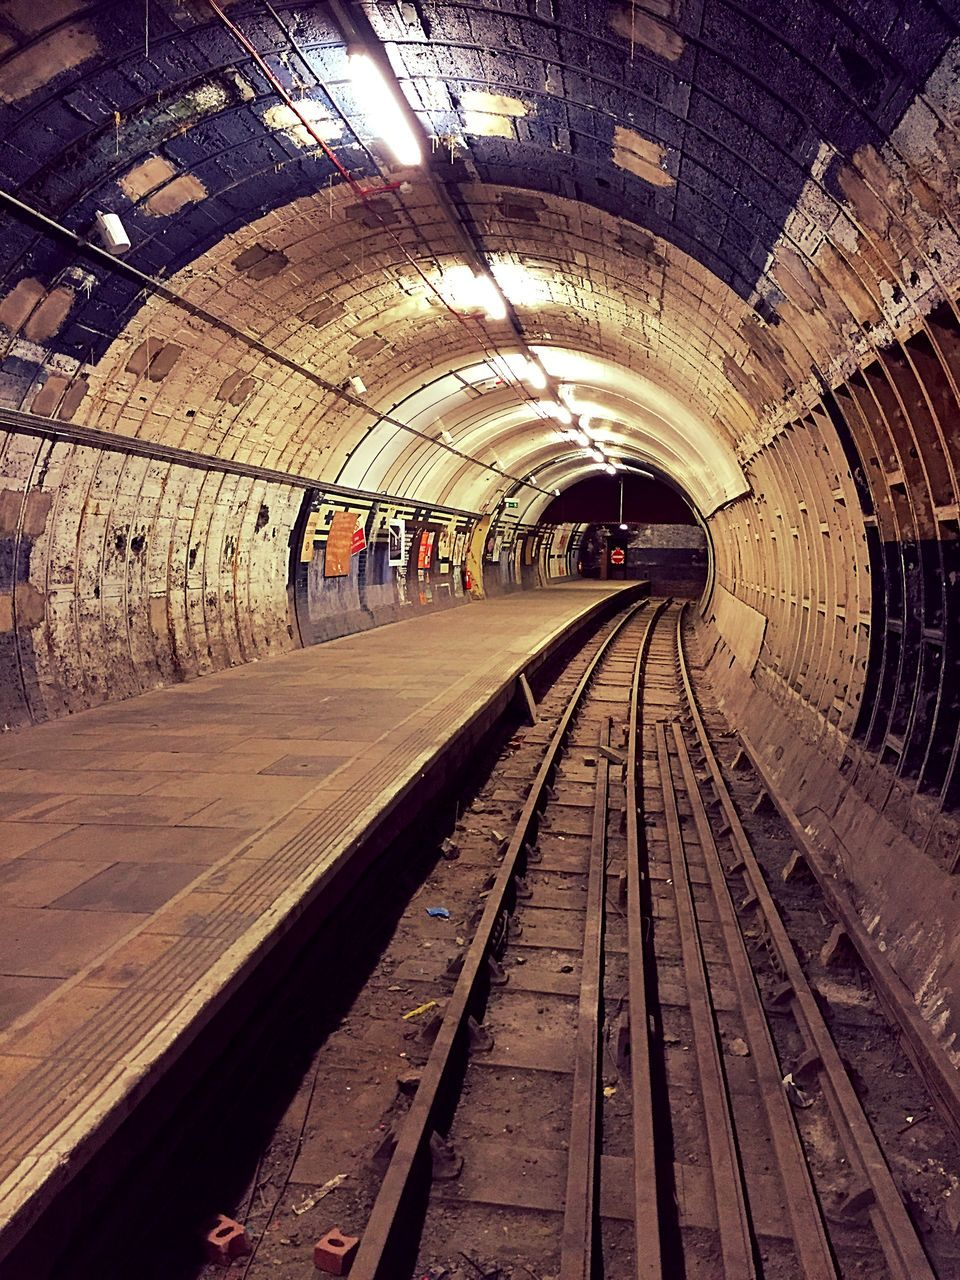 rail transportation, track, railroad track, transportation, public transportation, architecture, indoors, illuminated, mode of transportation, tunnel, railroad station, direction, diminishing perspective, the way forward, built structure, arch, subway, railroad station platform, travel, no people, ceiling, light, long, platform, station